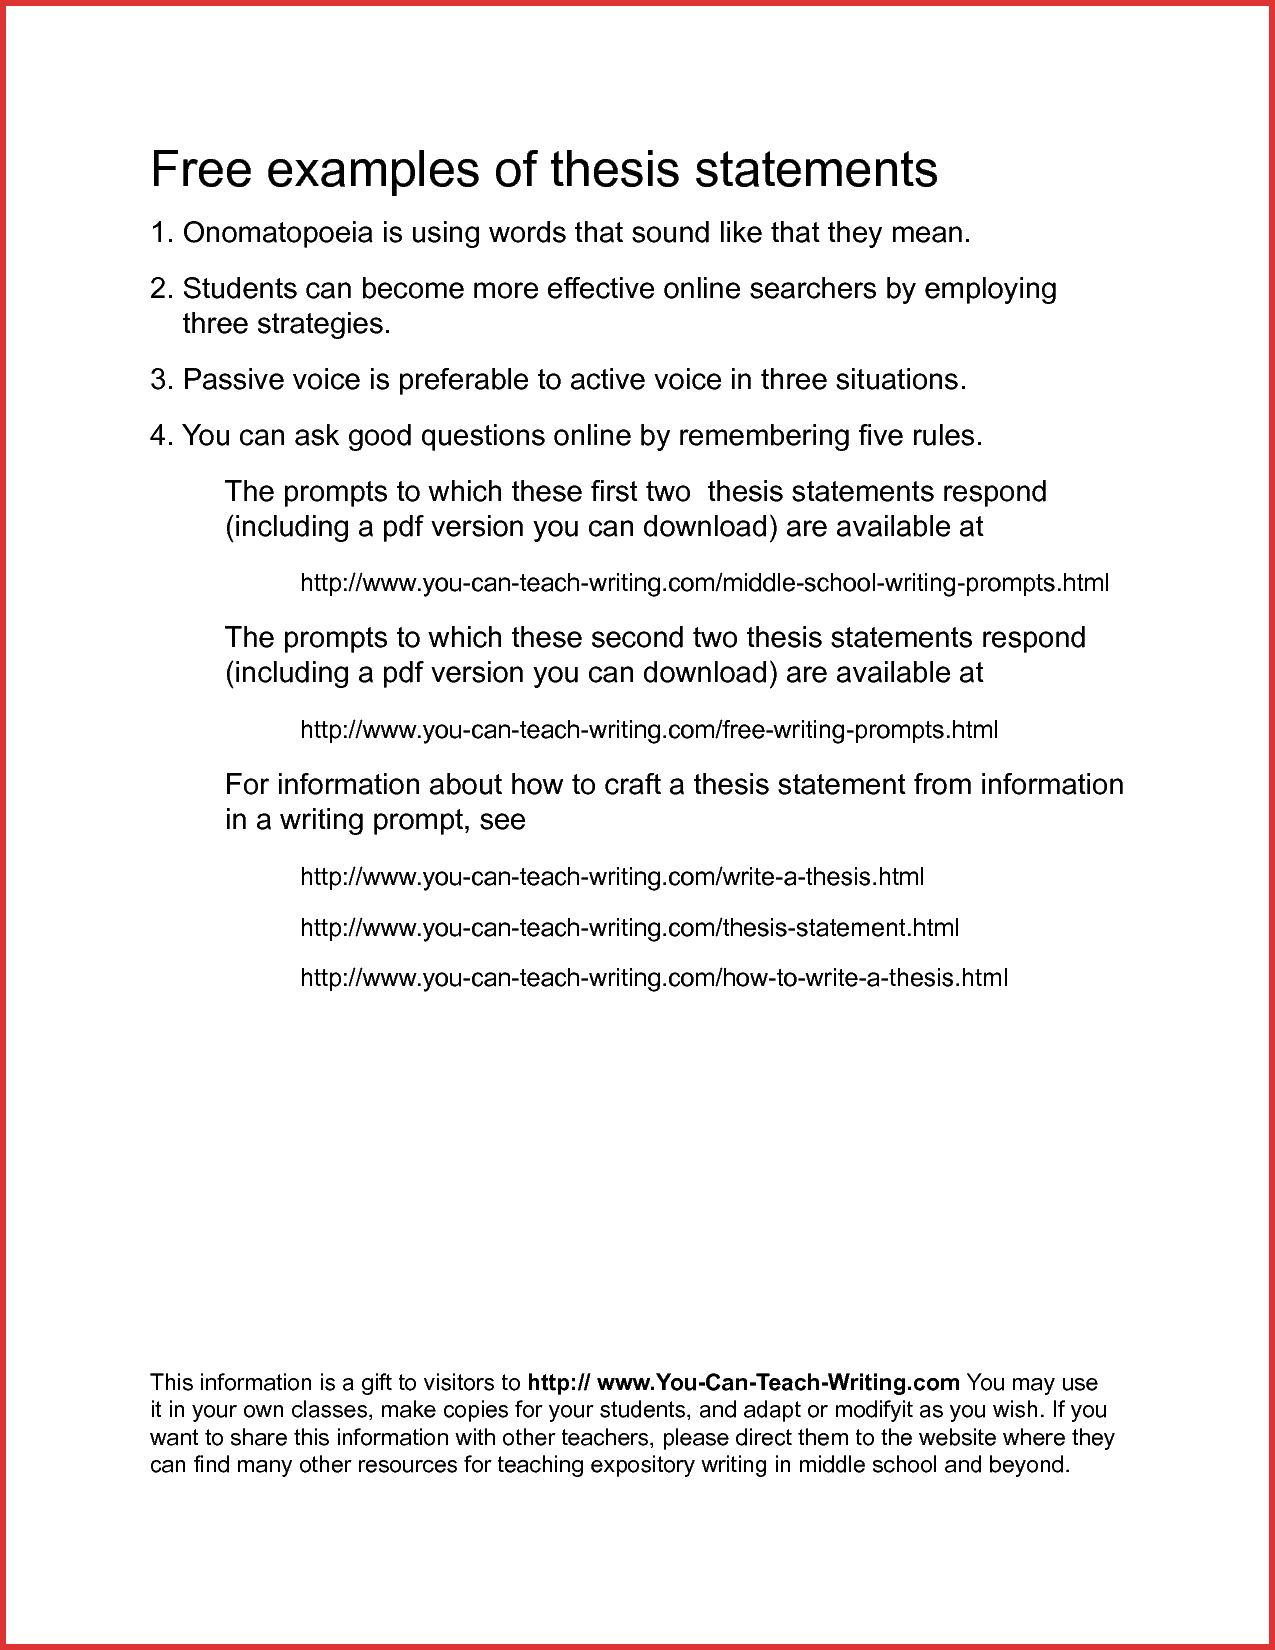 007 Research Paper Autobiographical Sketch Format Best Of Thesis For Persuasive Essay Speech Good Statement Psychology Stirring Examples Full